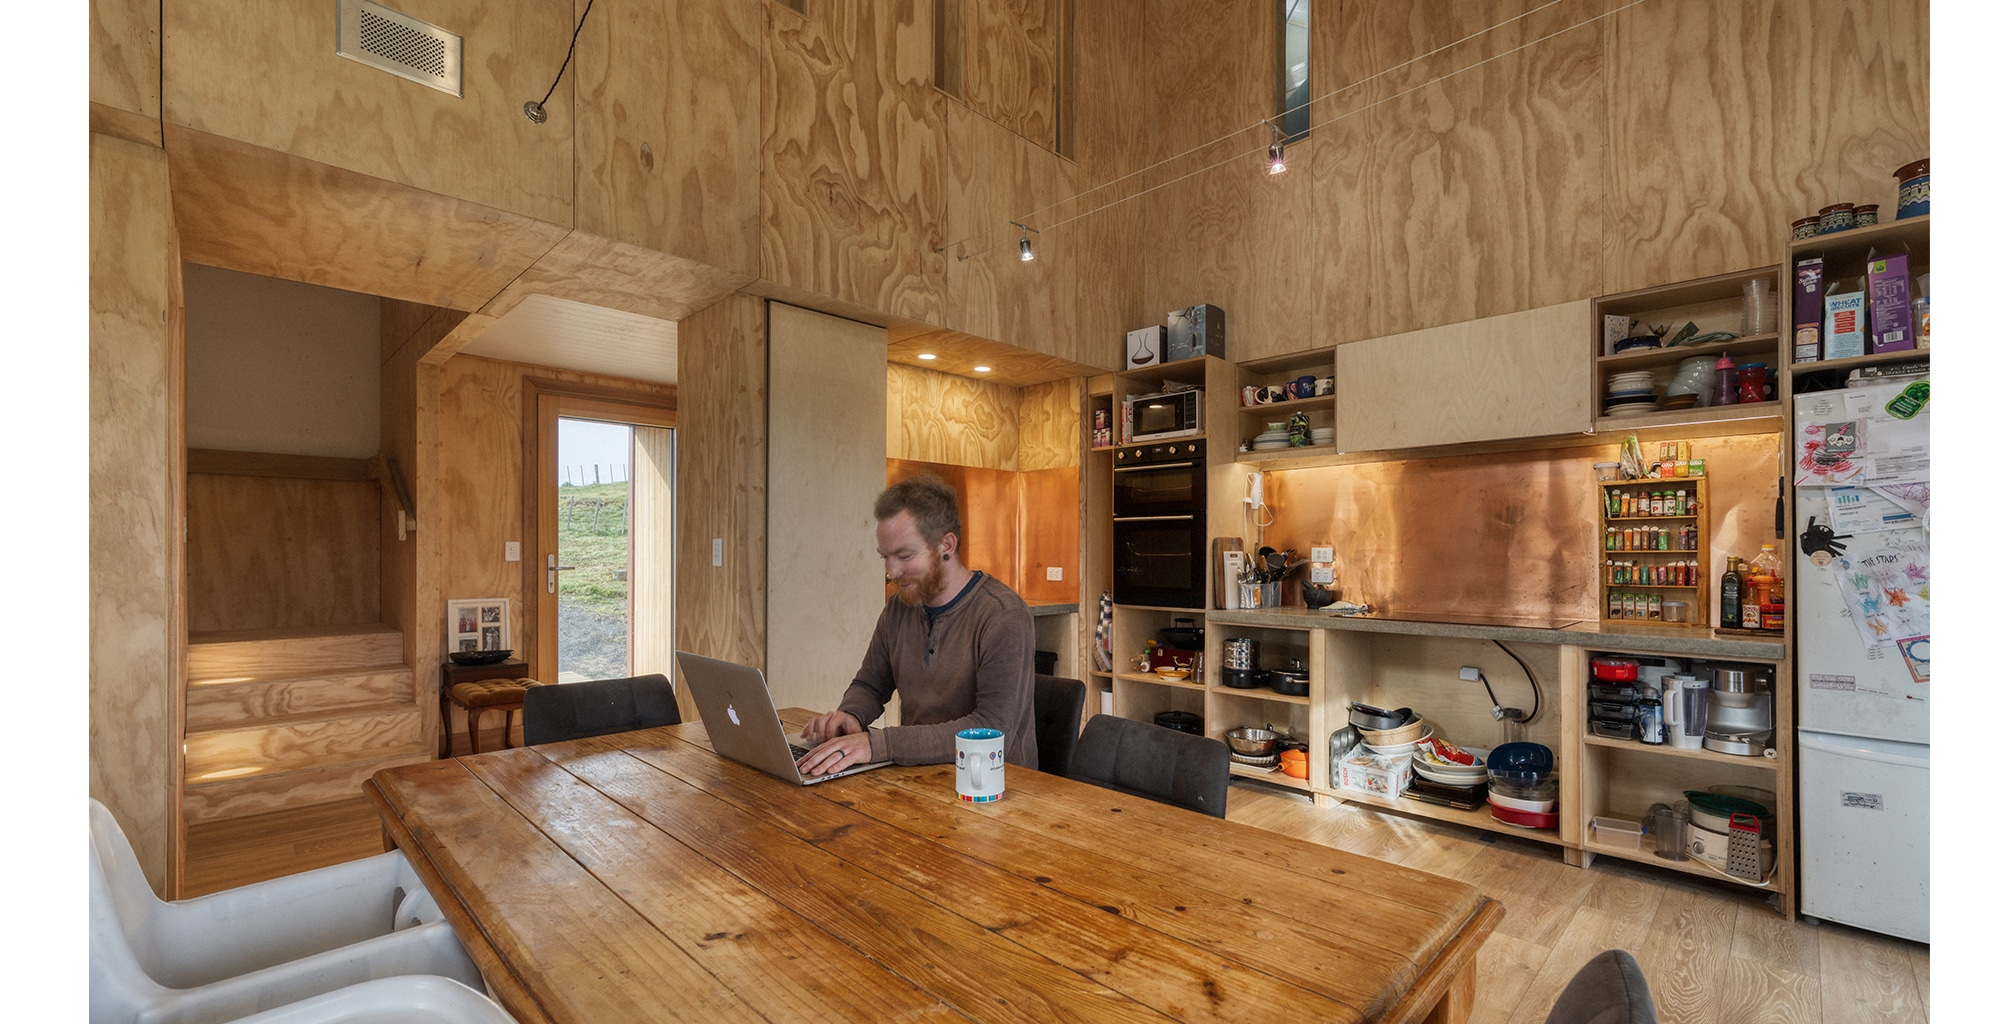 What defines a passive house?